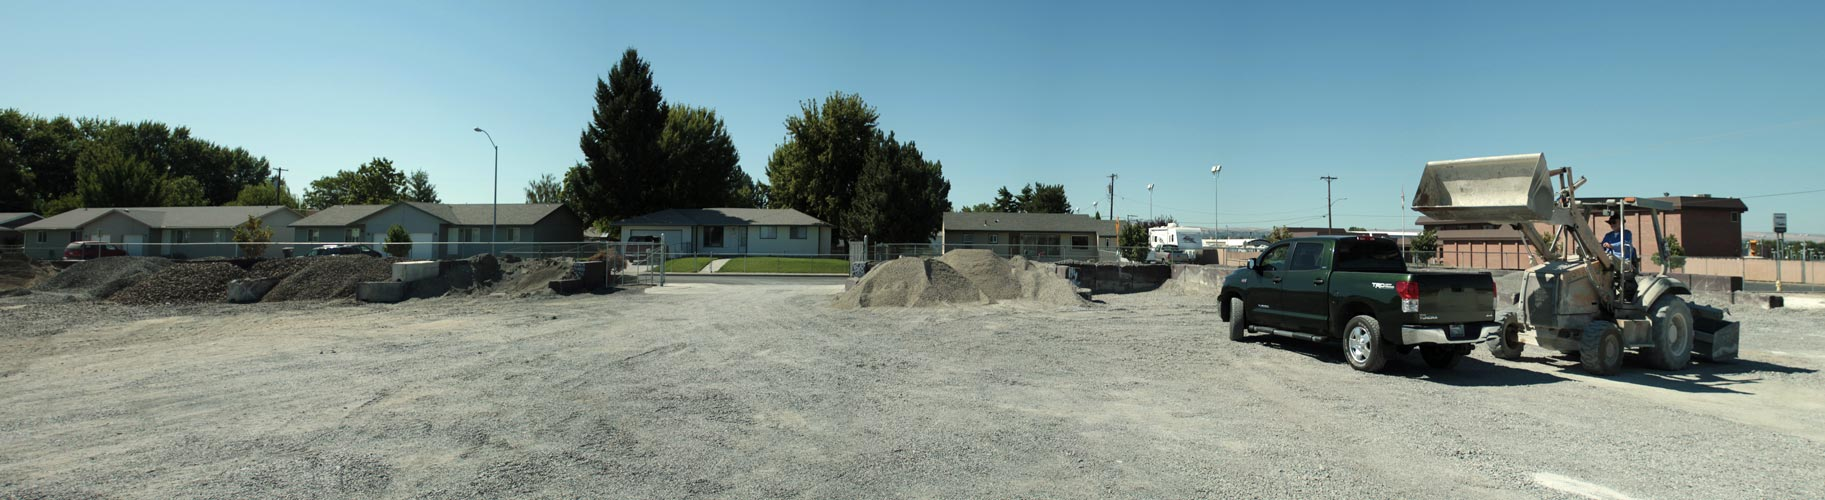 Purchase Gravel and Landscaping Materials at Pasco Rentals!